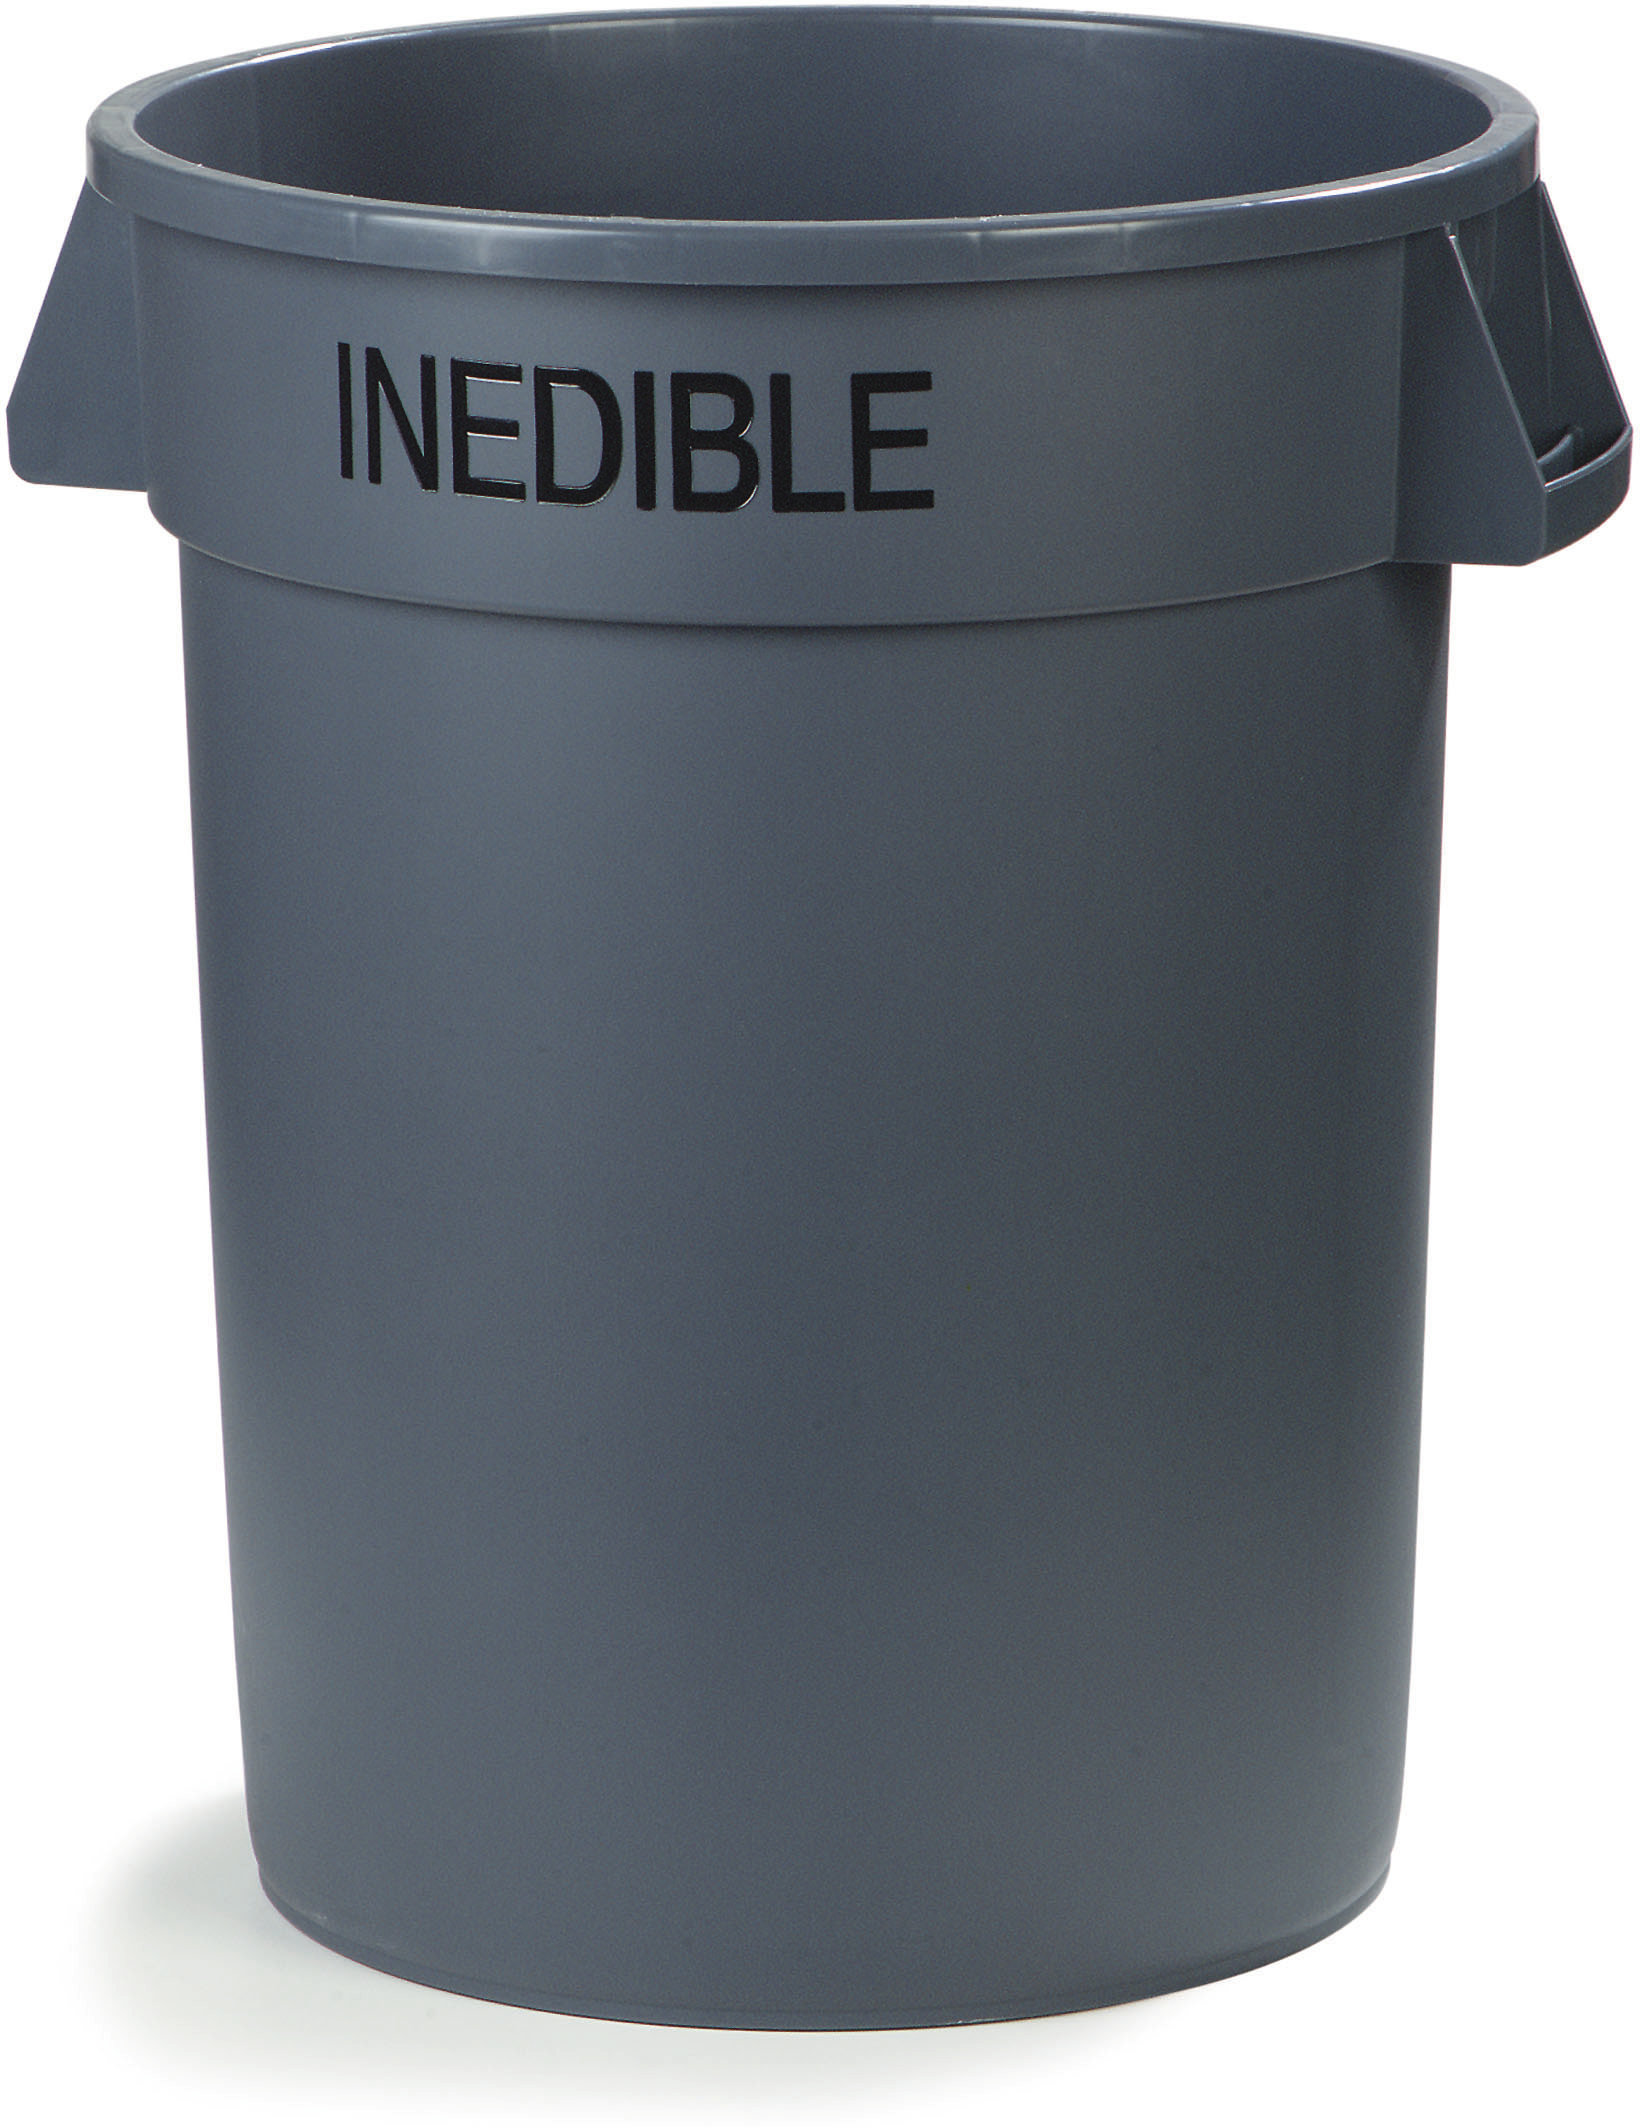 Bronco Round INEDIBLE Waste Container 32 Gallon - Gray